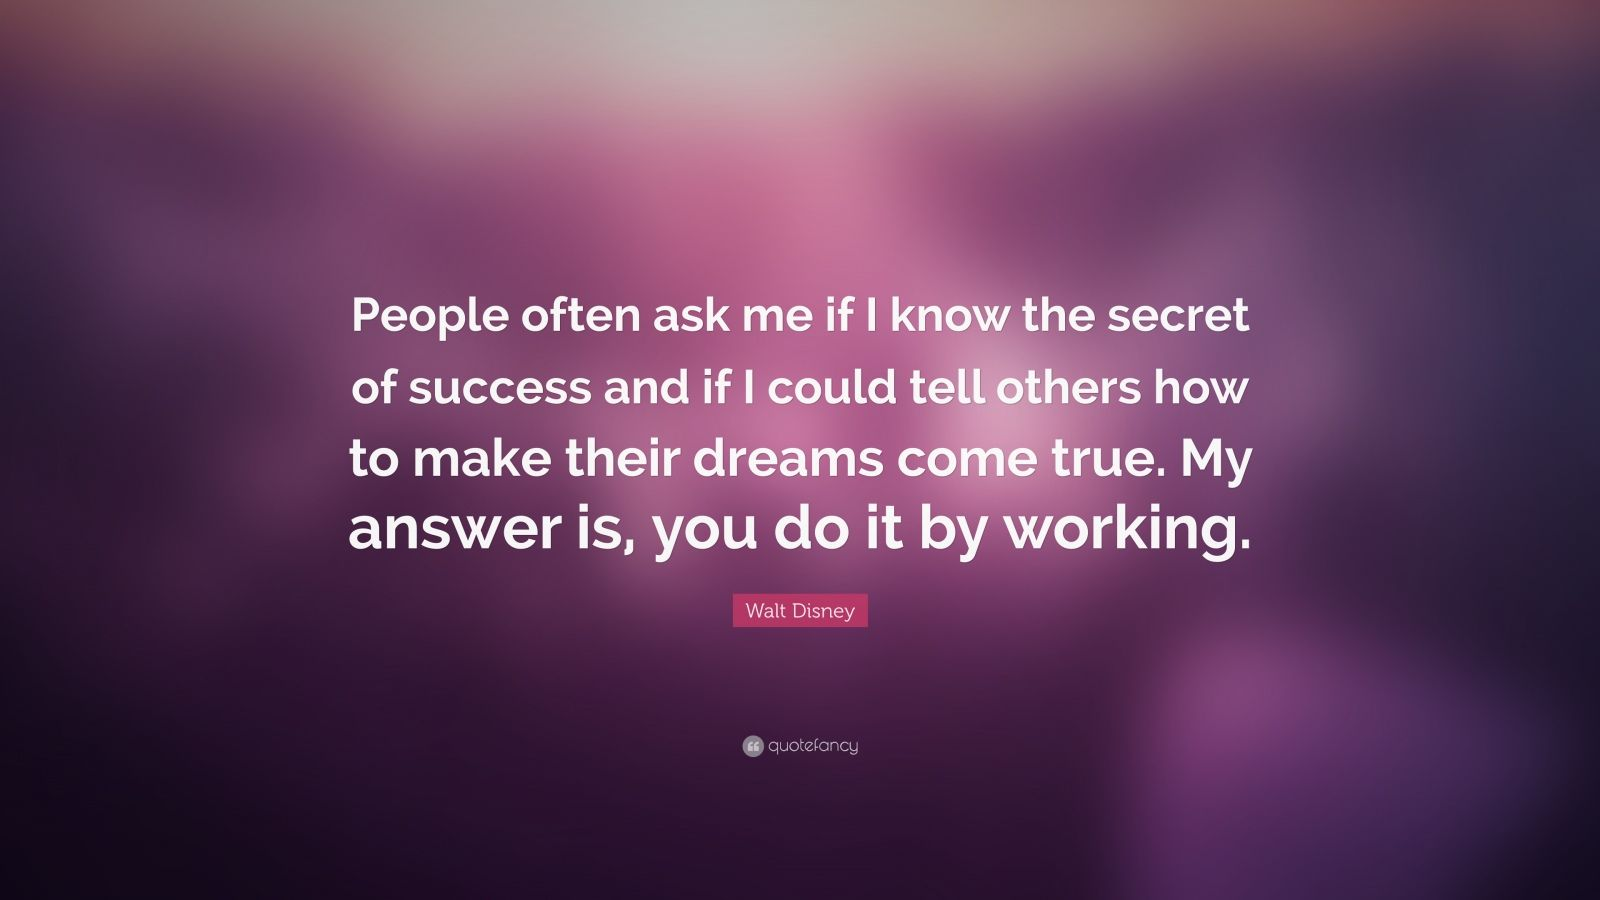 """Walt Disney Quote: """"People often ask me if I know the secret of success and if I could tell others how to make their dreams come true. My answer is, you do it by working."""""""